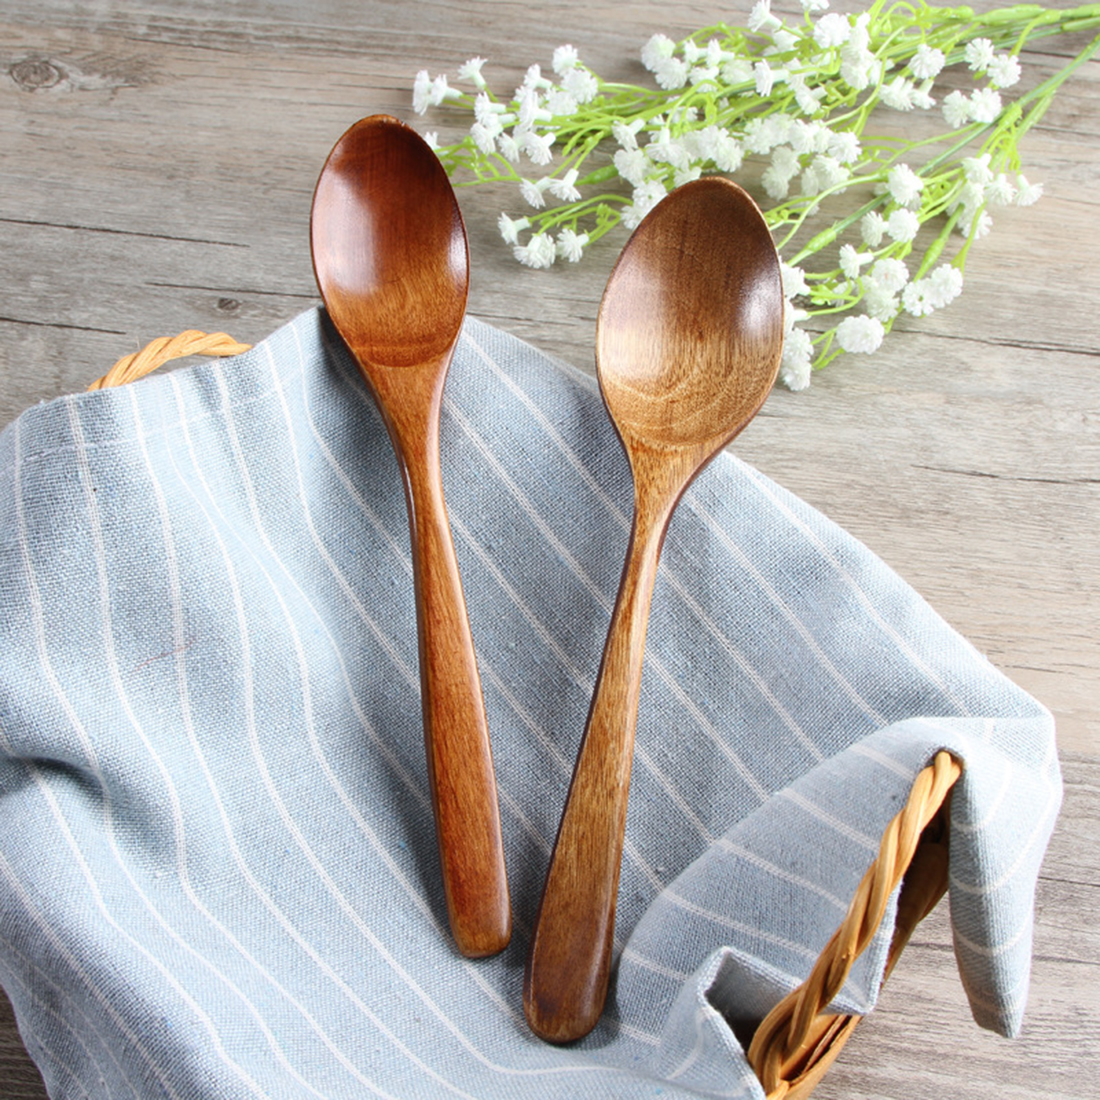 Creative rice spoon Kitchen wooden Spoon cooking ...